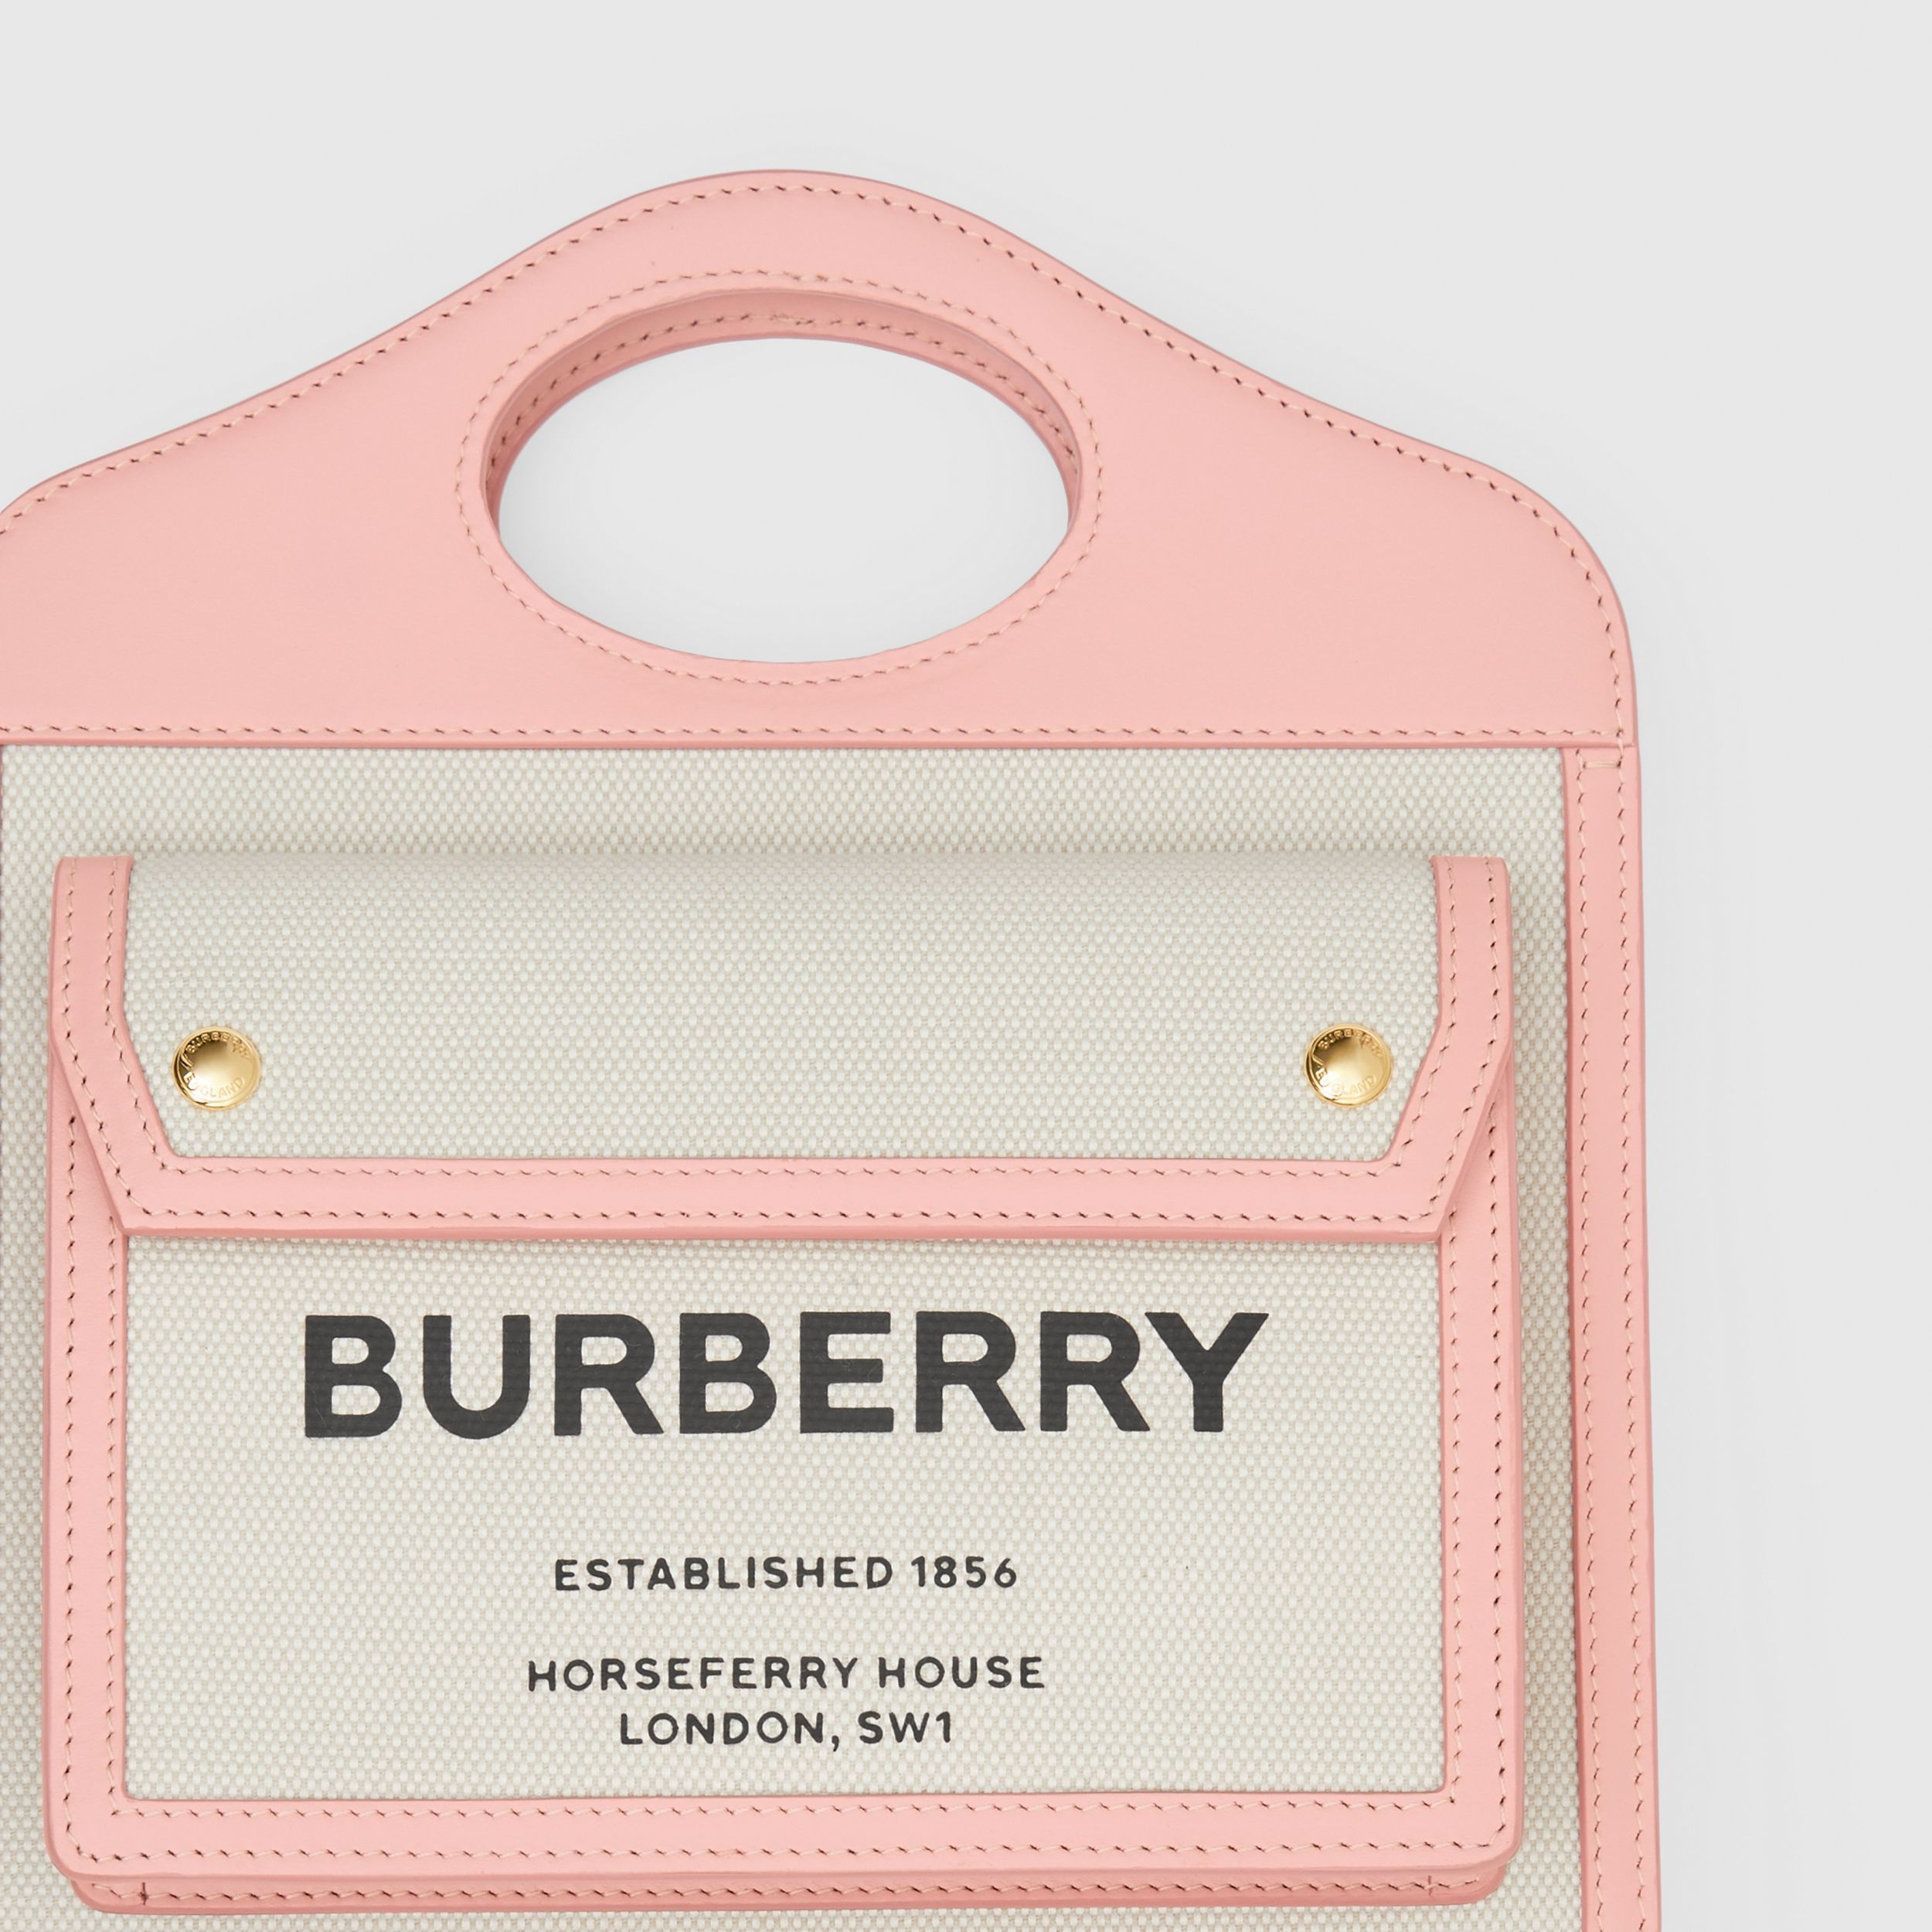 Mini Two-tone Canvas and Leather Pocket Bag in Blush Pink - Women | Burberry - 2